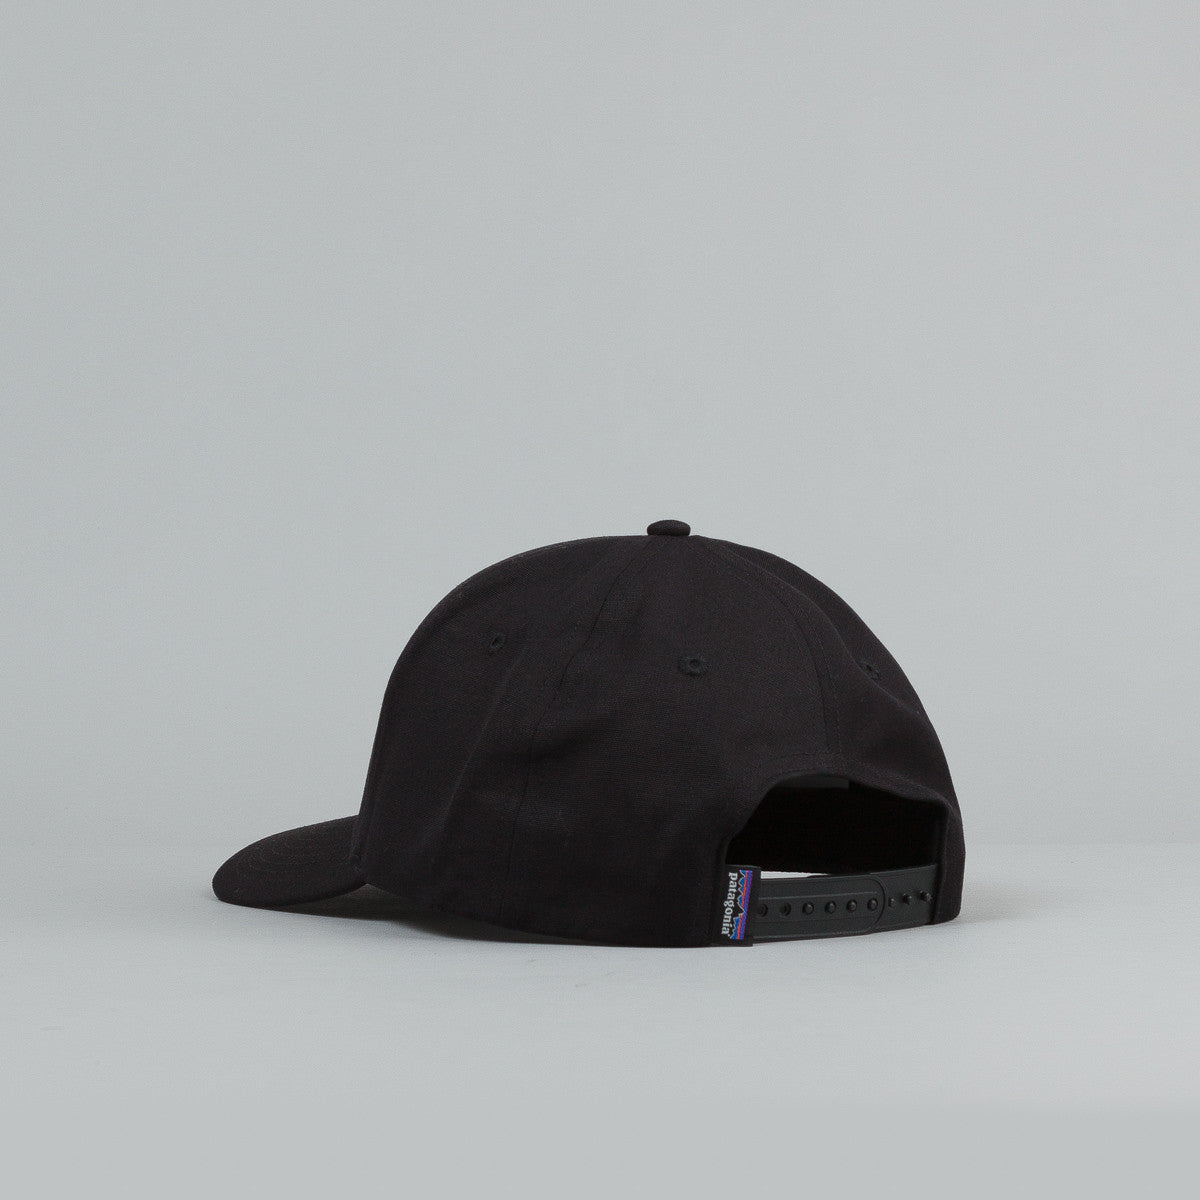 Patagonia '73 Roger That Snapback Cap - Black